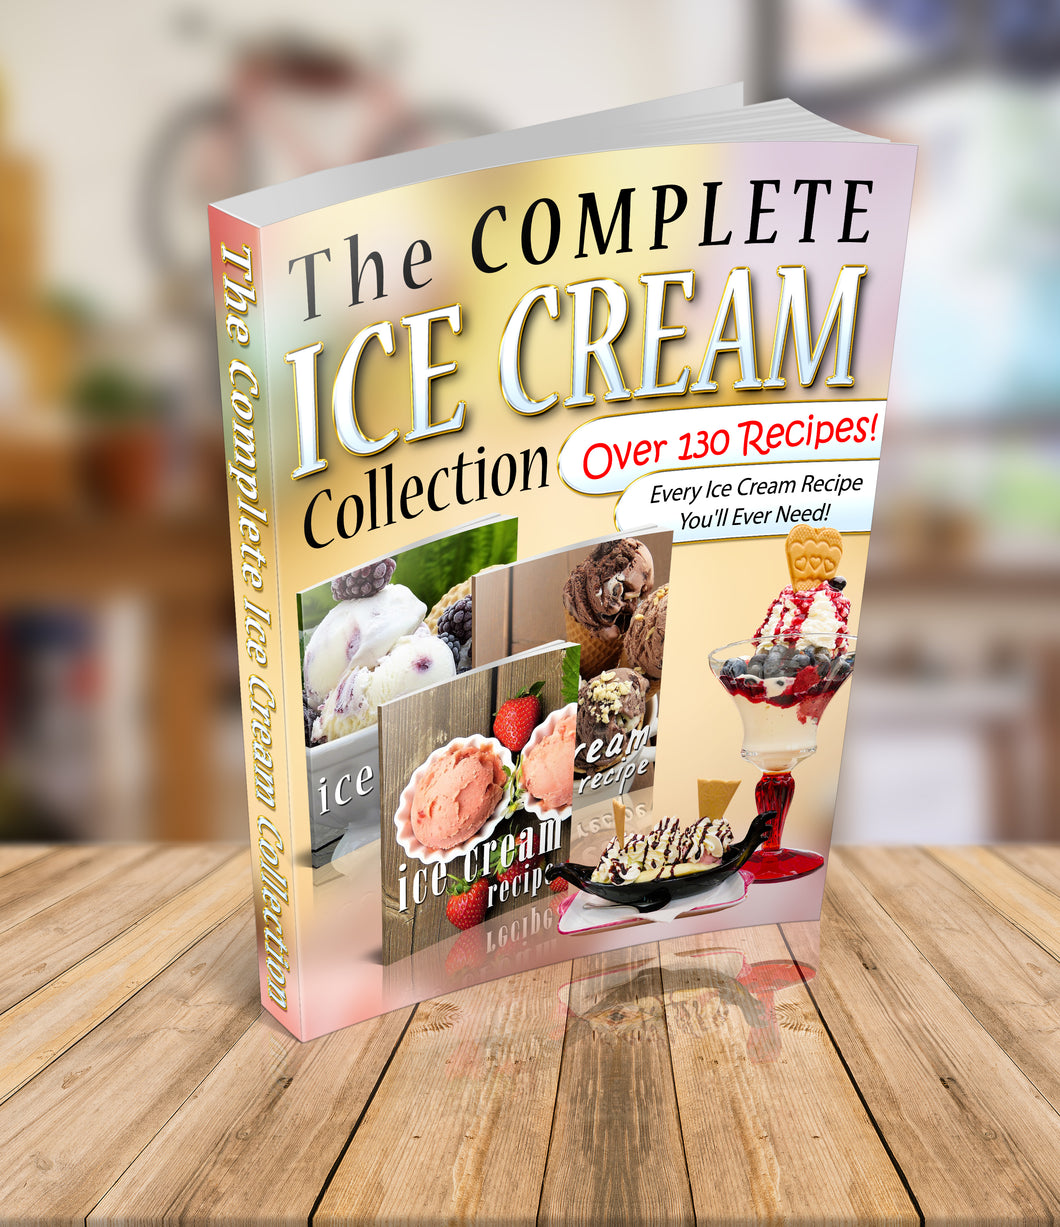 The Complete Ice Cream Collection - eBook Sale - Over 130 Recipes!